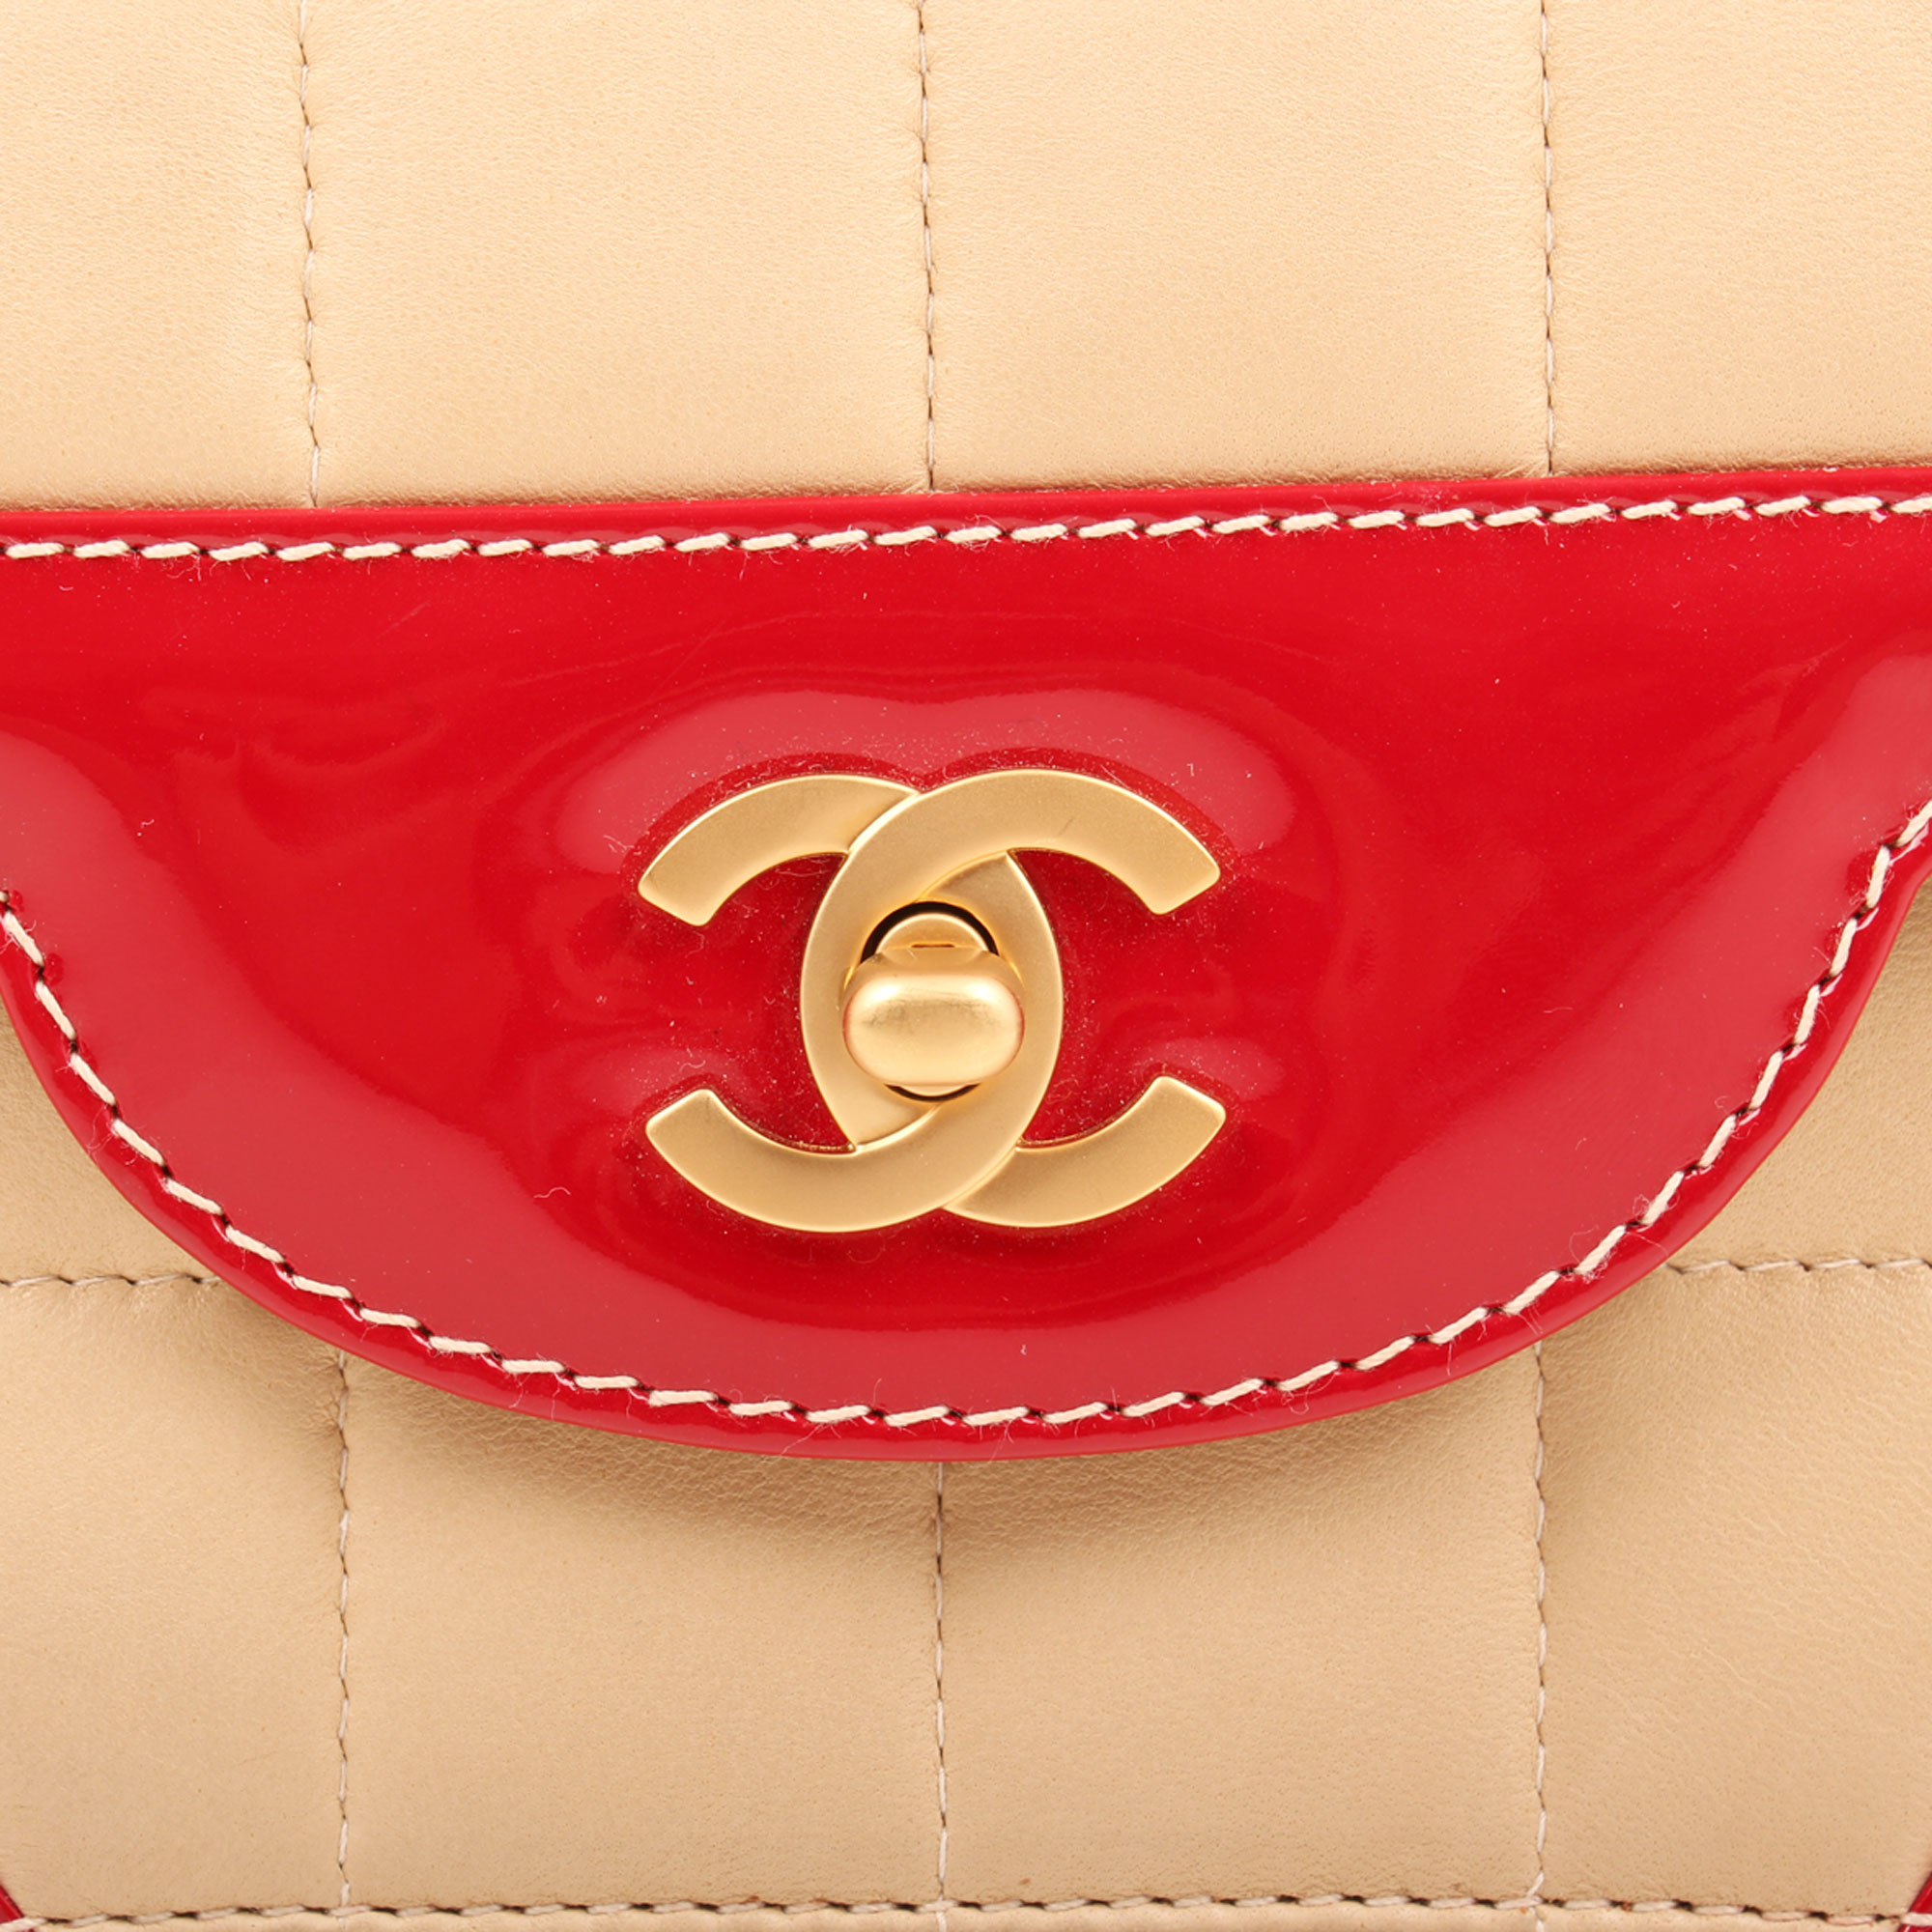 Clasp detail image of chanel bicolor choco bar single flap